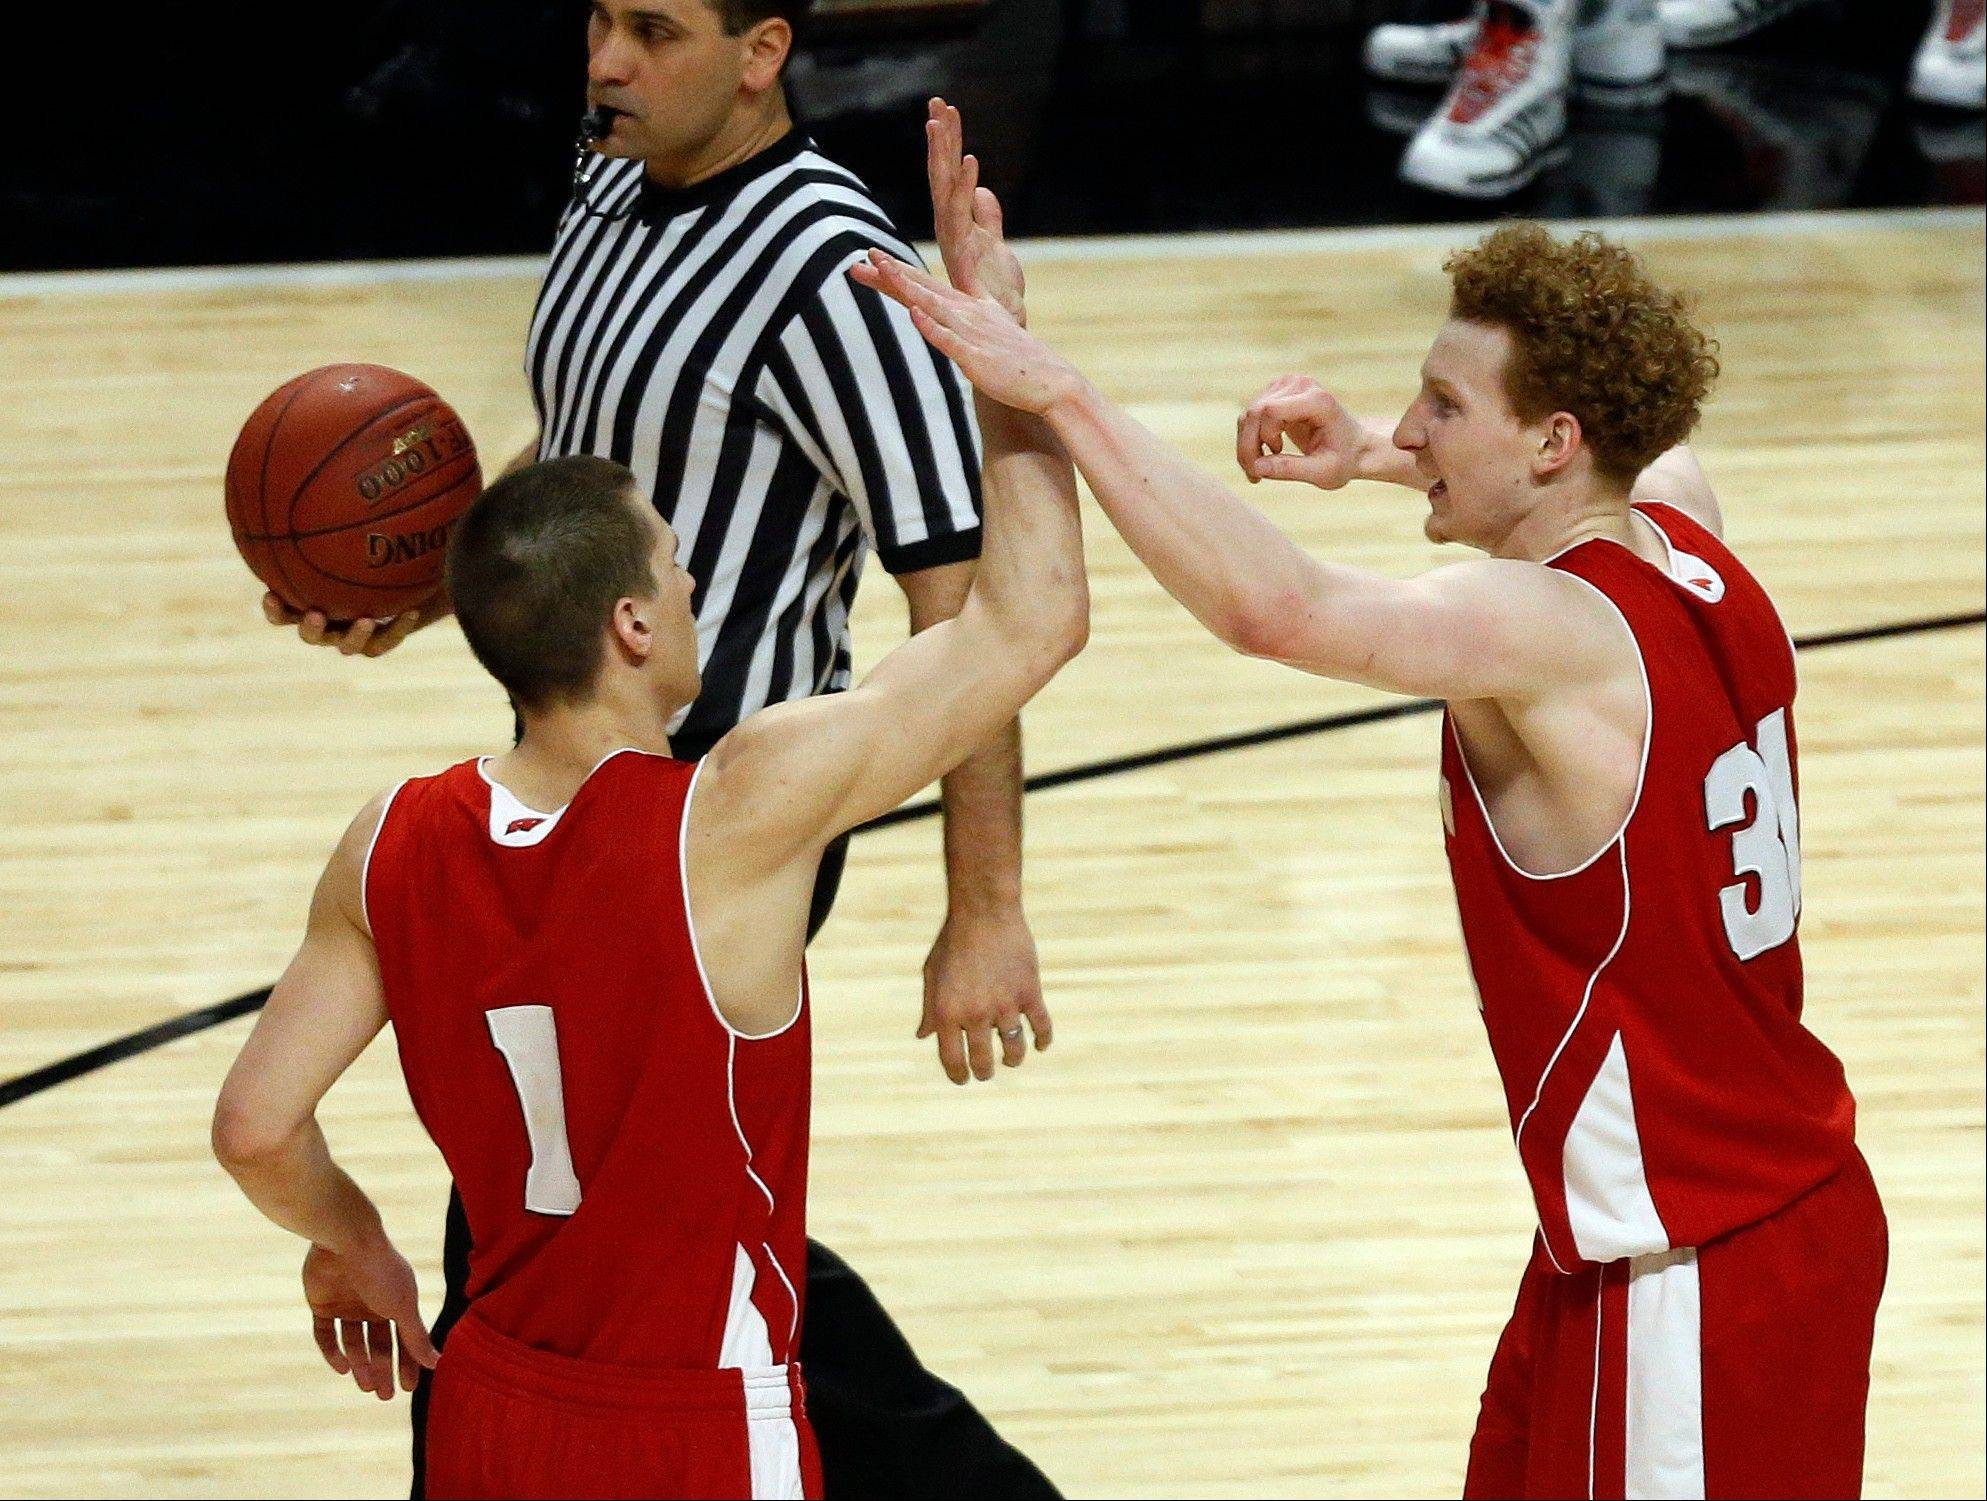 Wisconsin's Mike Bruesewitz (31) celebrates with Ben Brust (1) during the final minute in the second half of an NCAA college basketball game against Indiana at the Big Ten tournament Saturday, March 16, 2013, in Chicago. Wisconsin won 68-56.